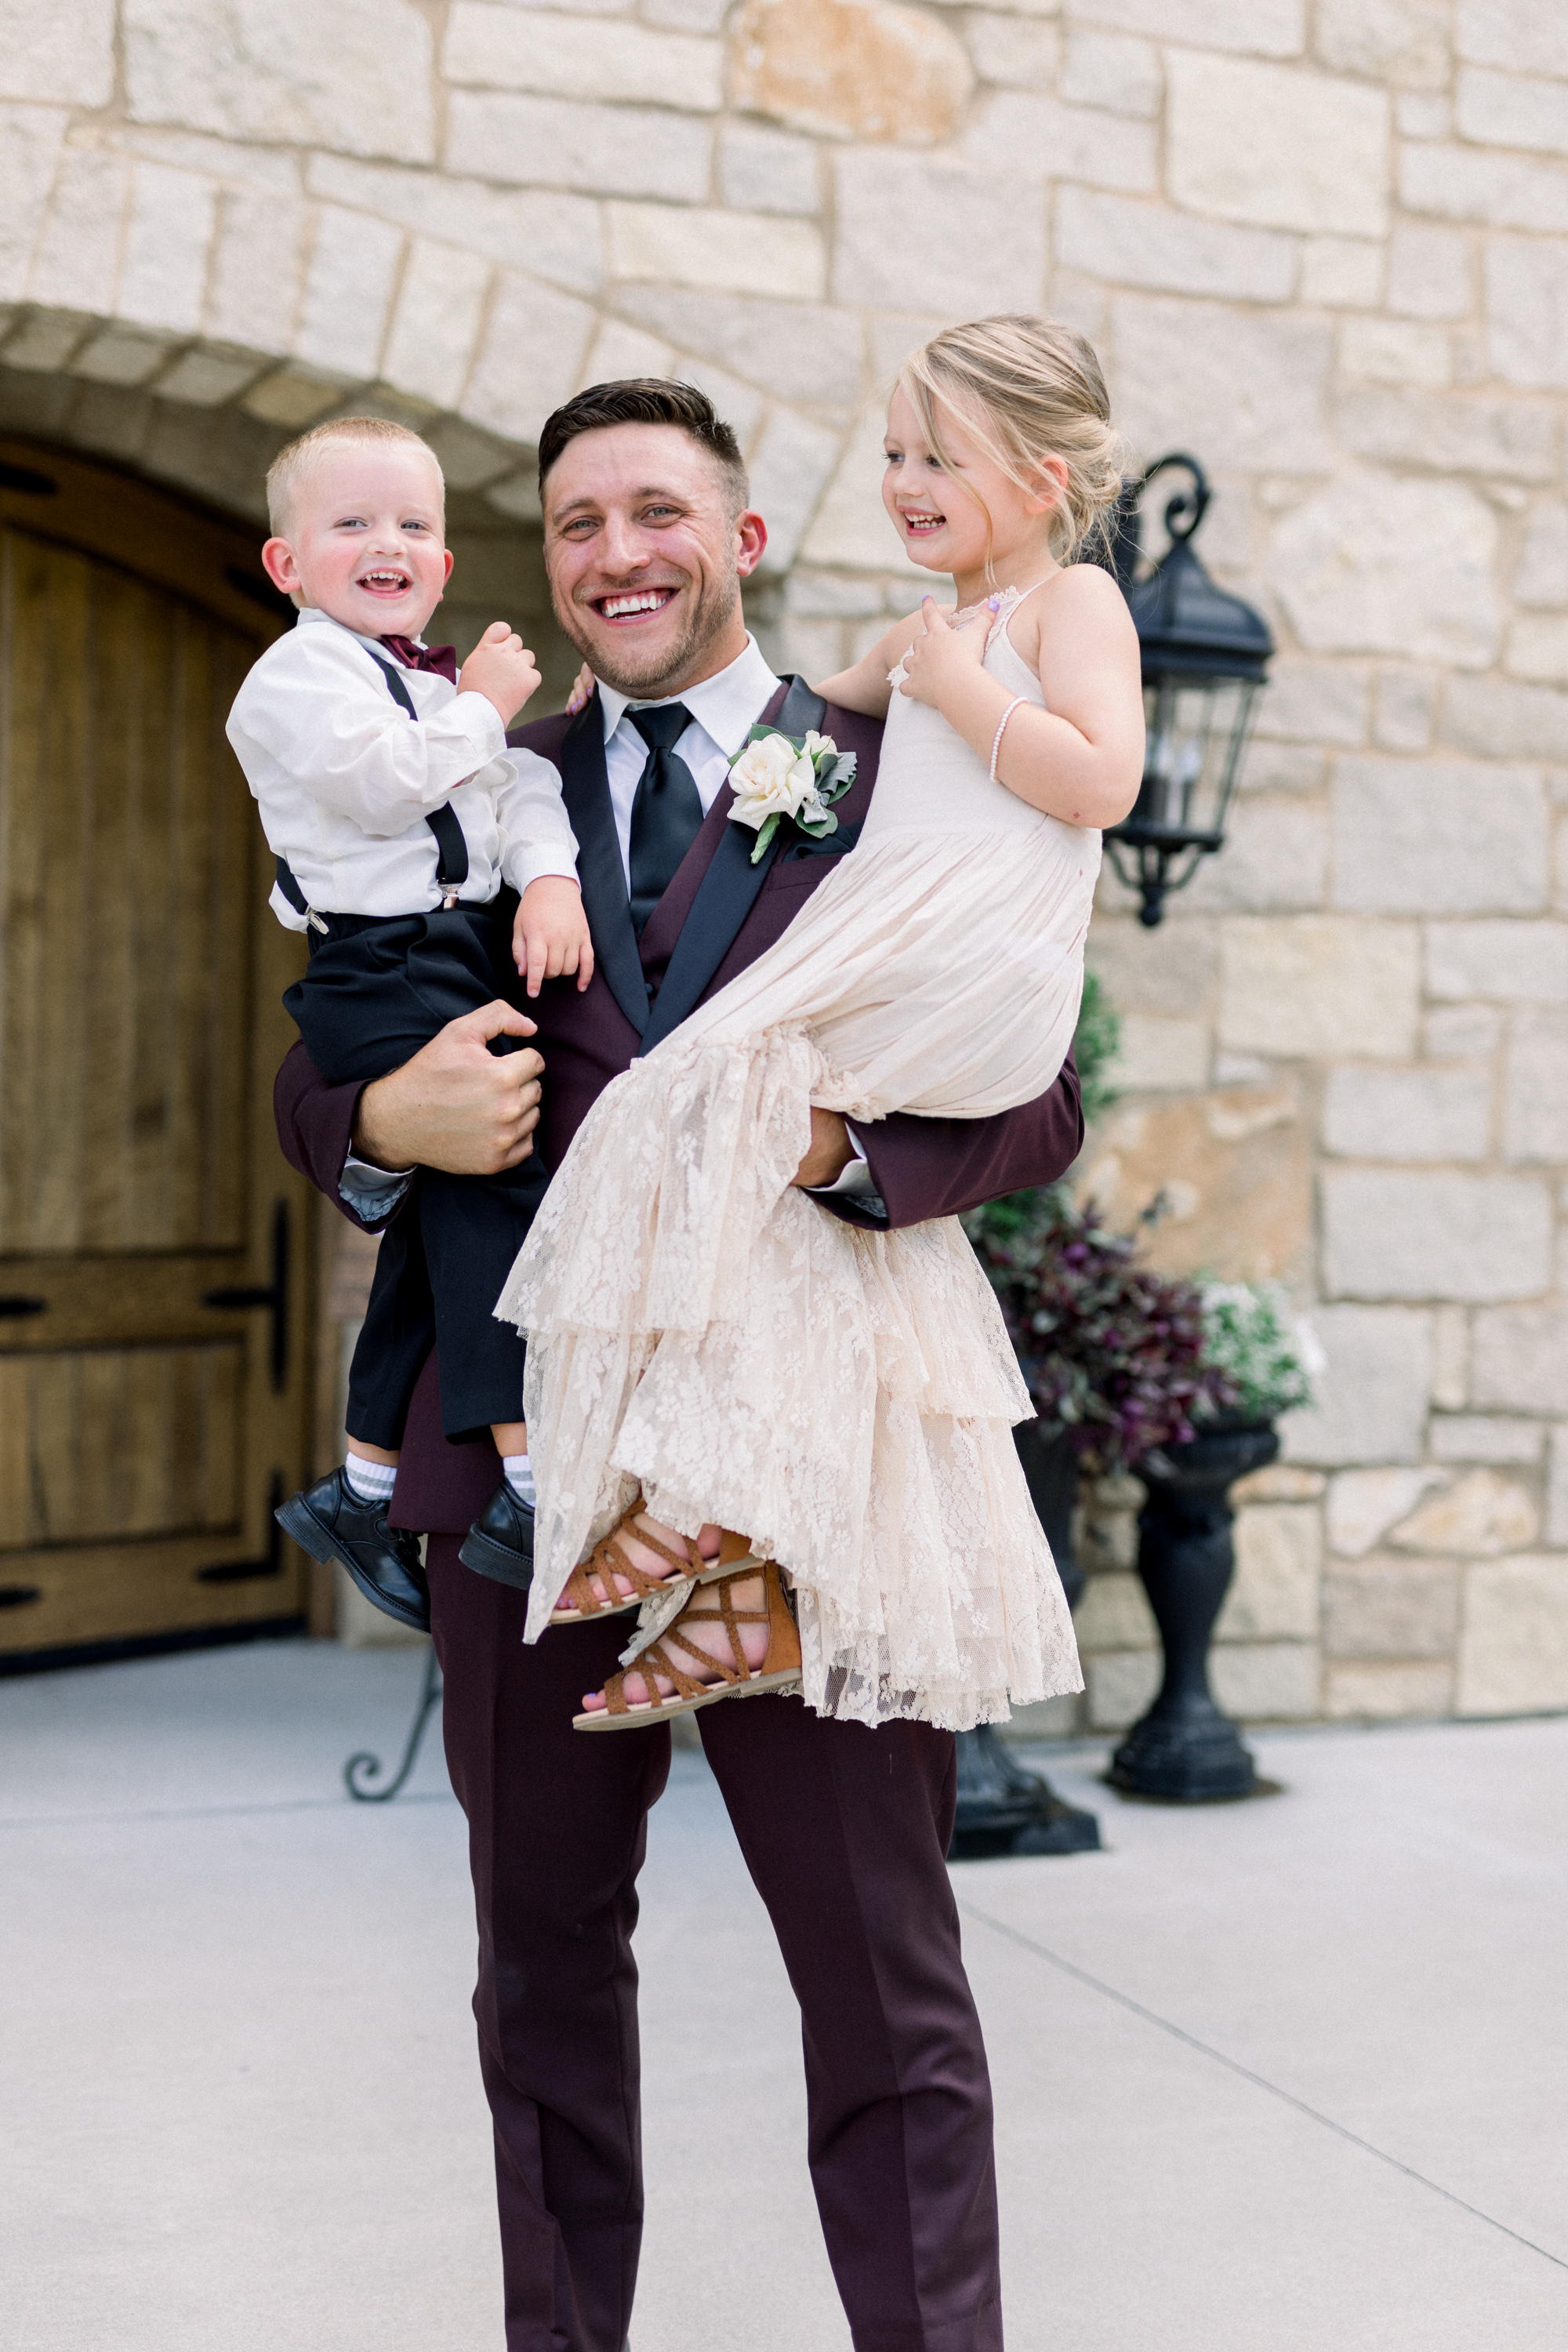 Lauren + Dallas 7-20-19 (466 of 1118).jpg